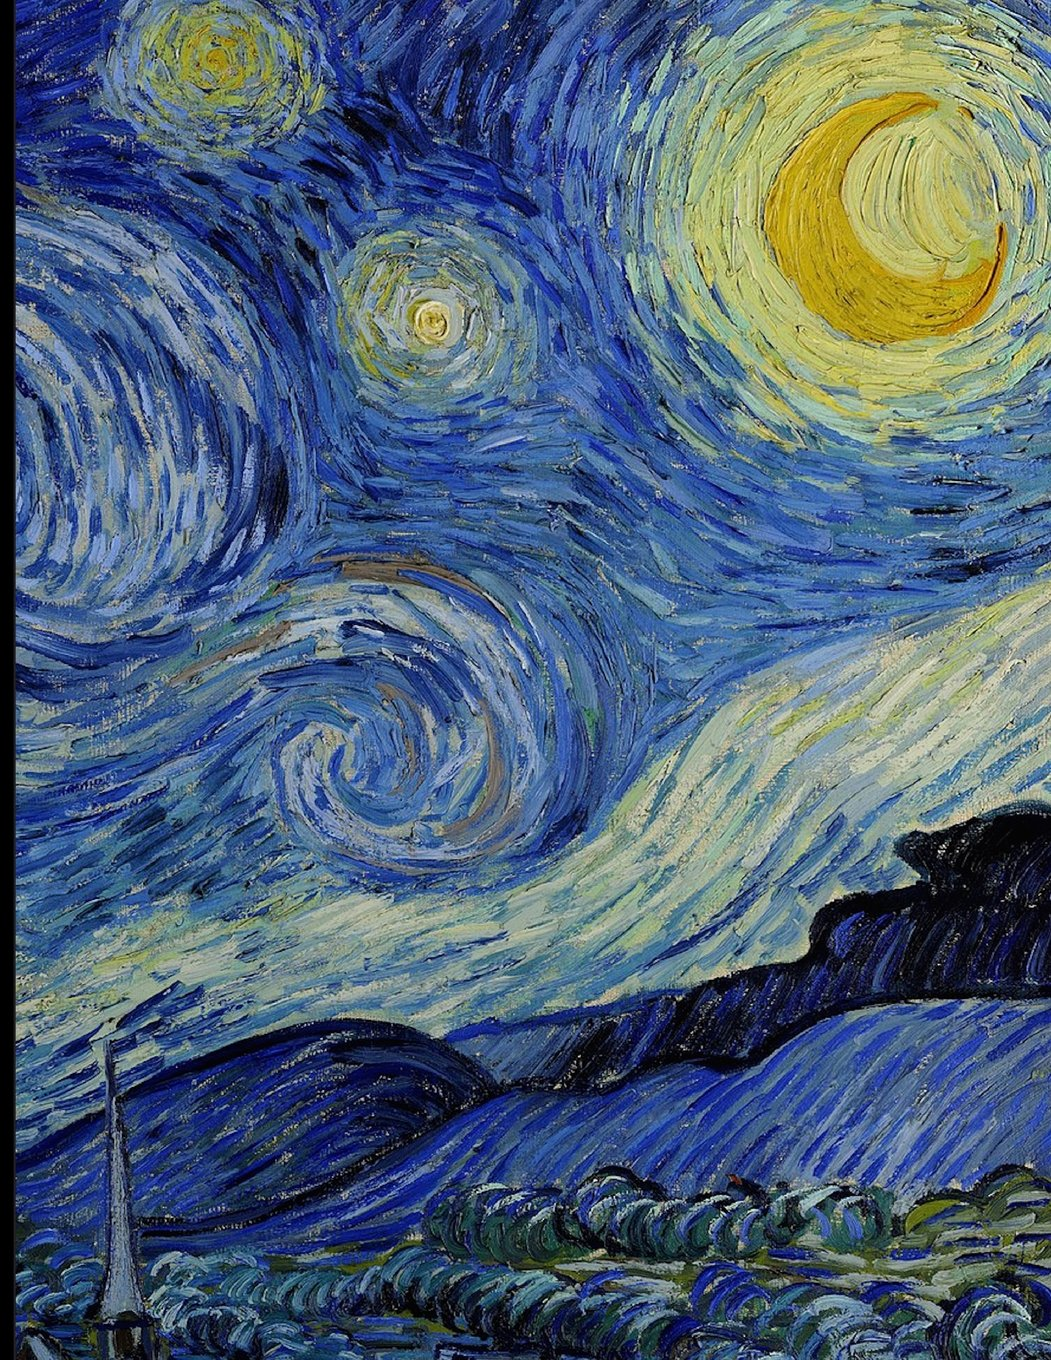 Download Notebook: Large Journal with Half Blank, Half College Ruled Paper, with Van Gogh's Starry Night; 8.5x11 Notebook, Use as a Journal or Diary or as a Gift for Men, Women, Boys, or Girls ebook